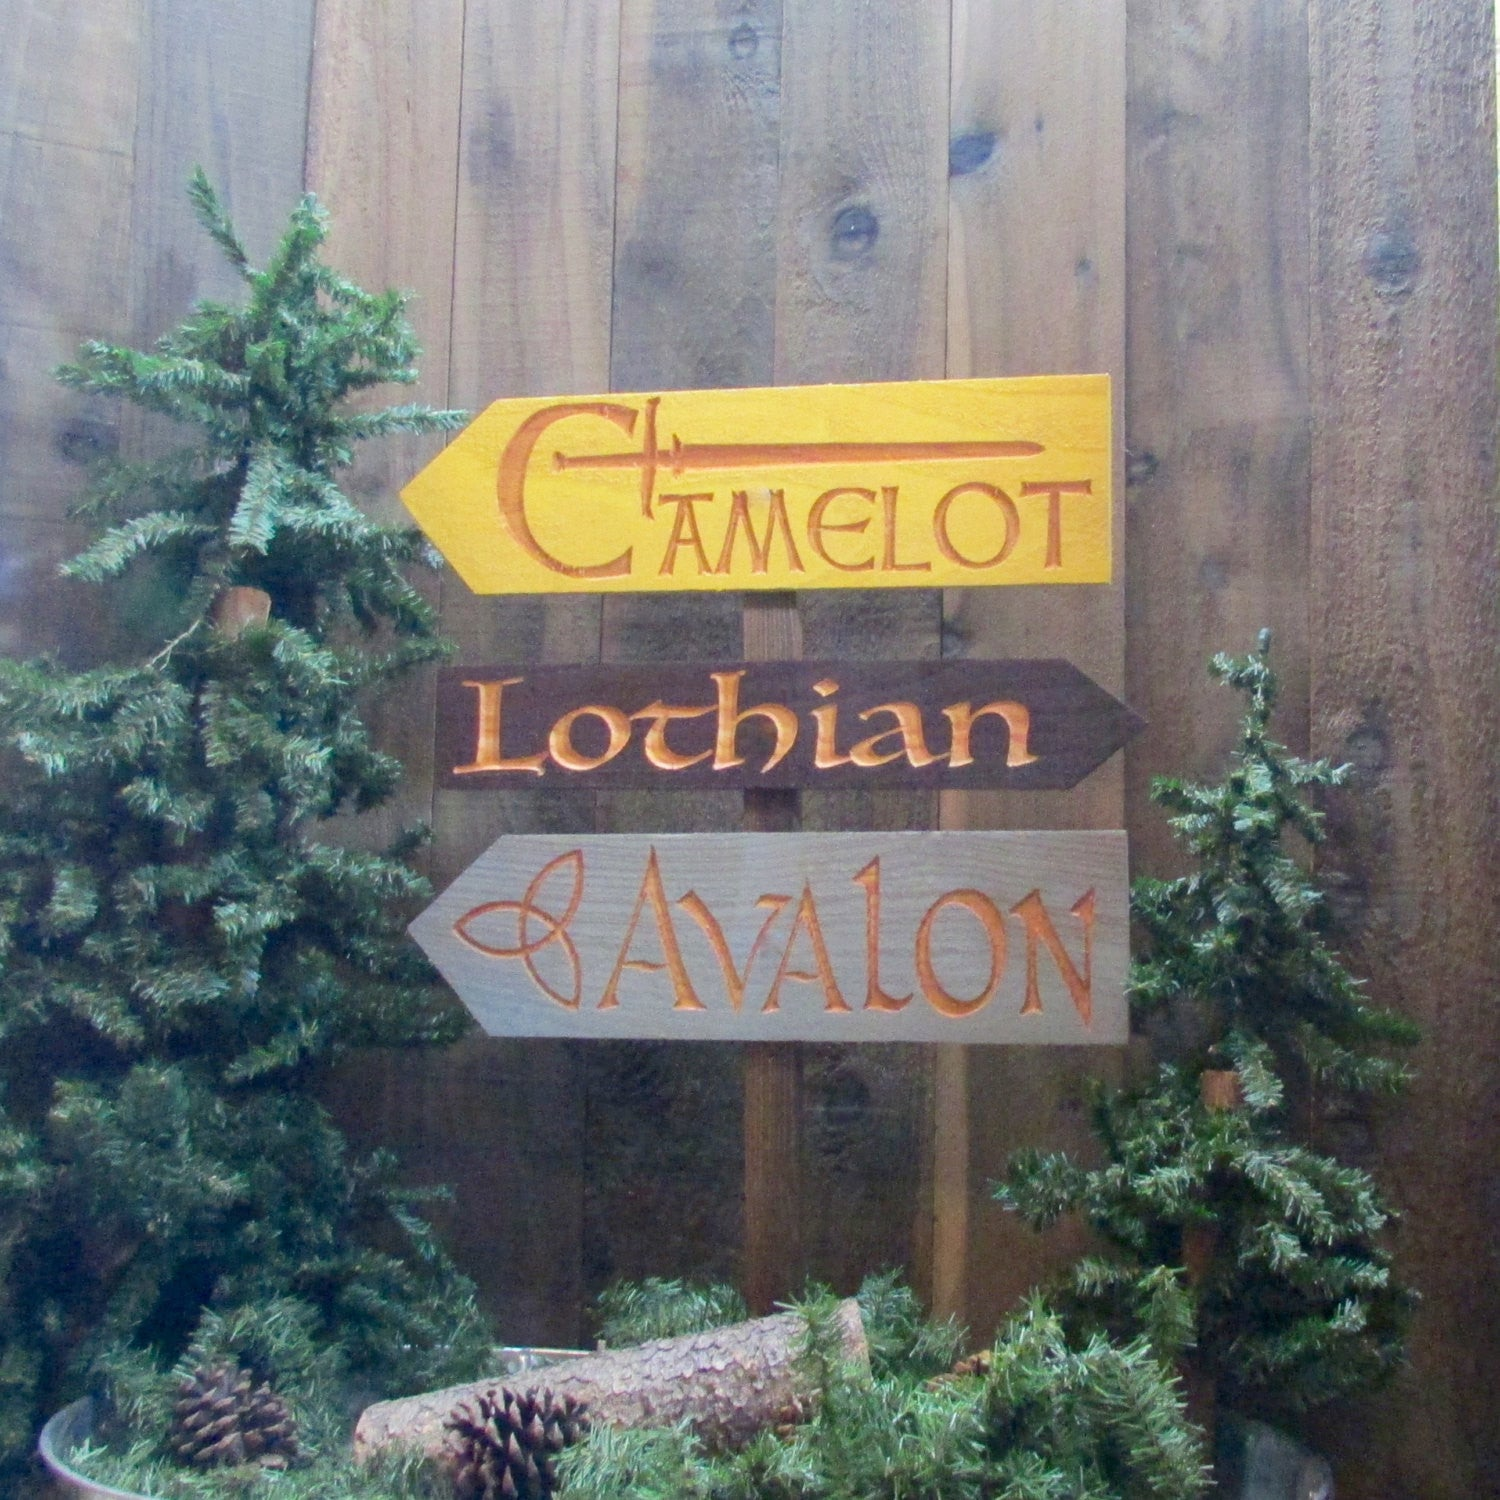 King Arthur Fantasy Story Signs - Camelot Avalon Lothian  - Cedar Wood Directional Signs